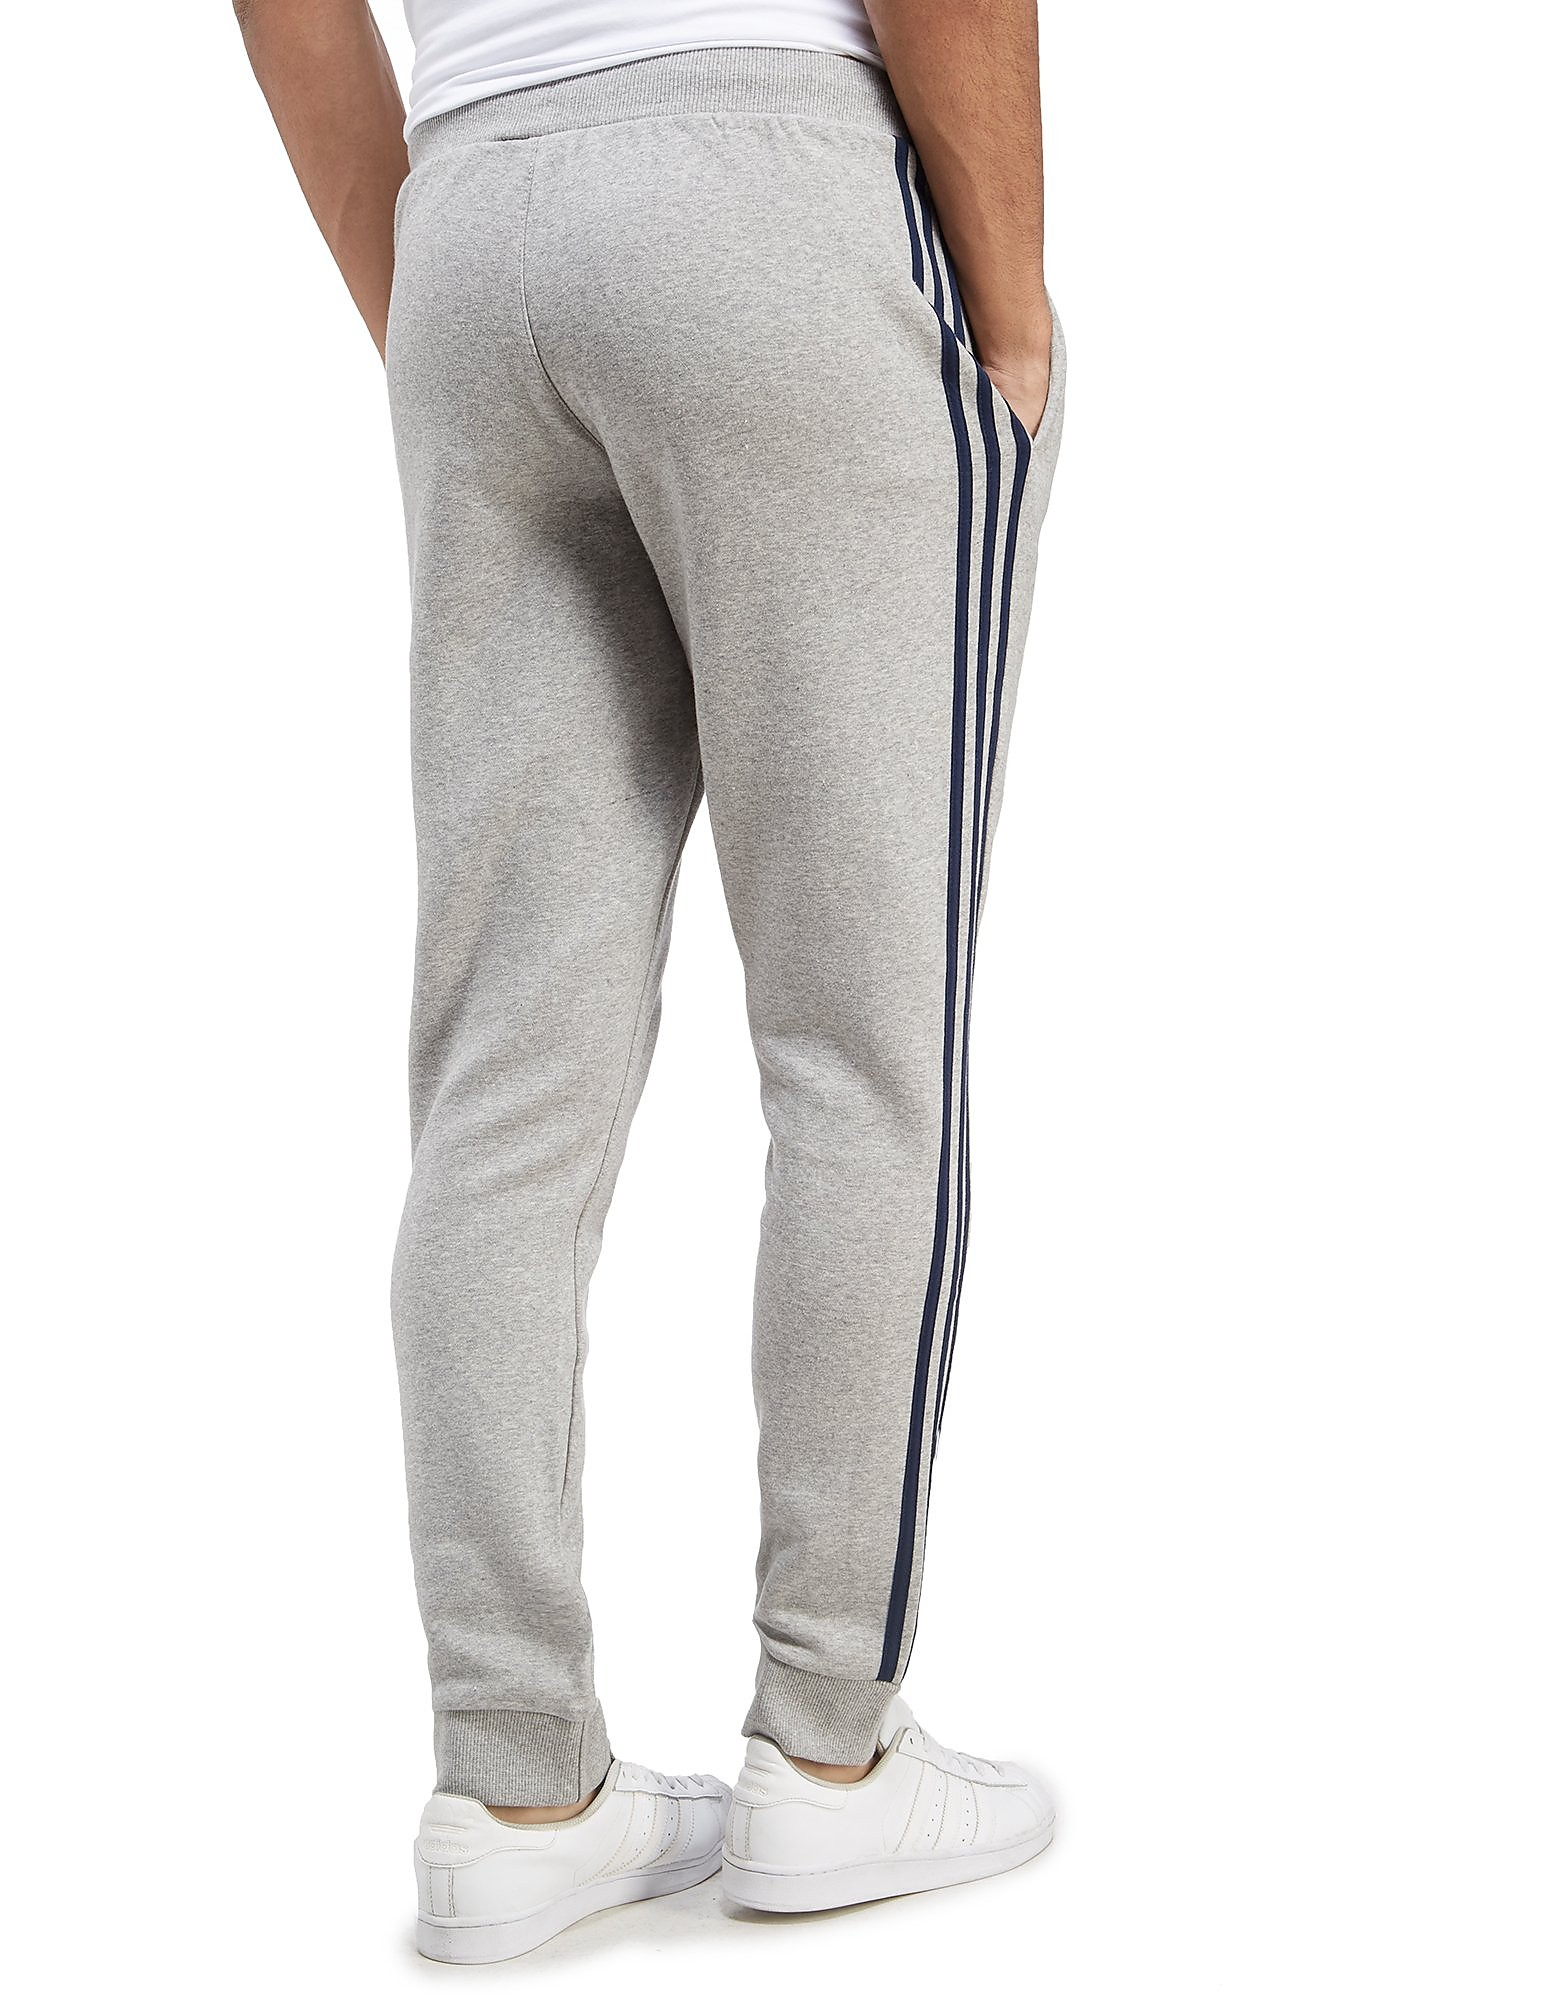 adidas Originals Cuff Pants